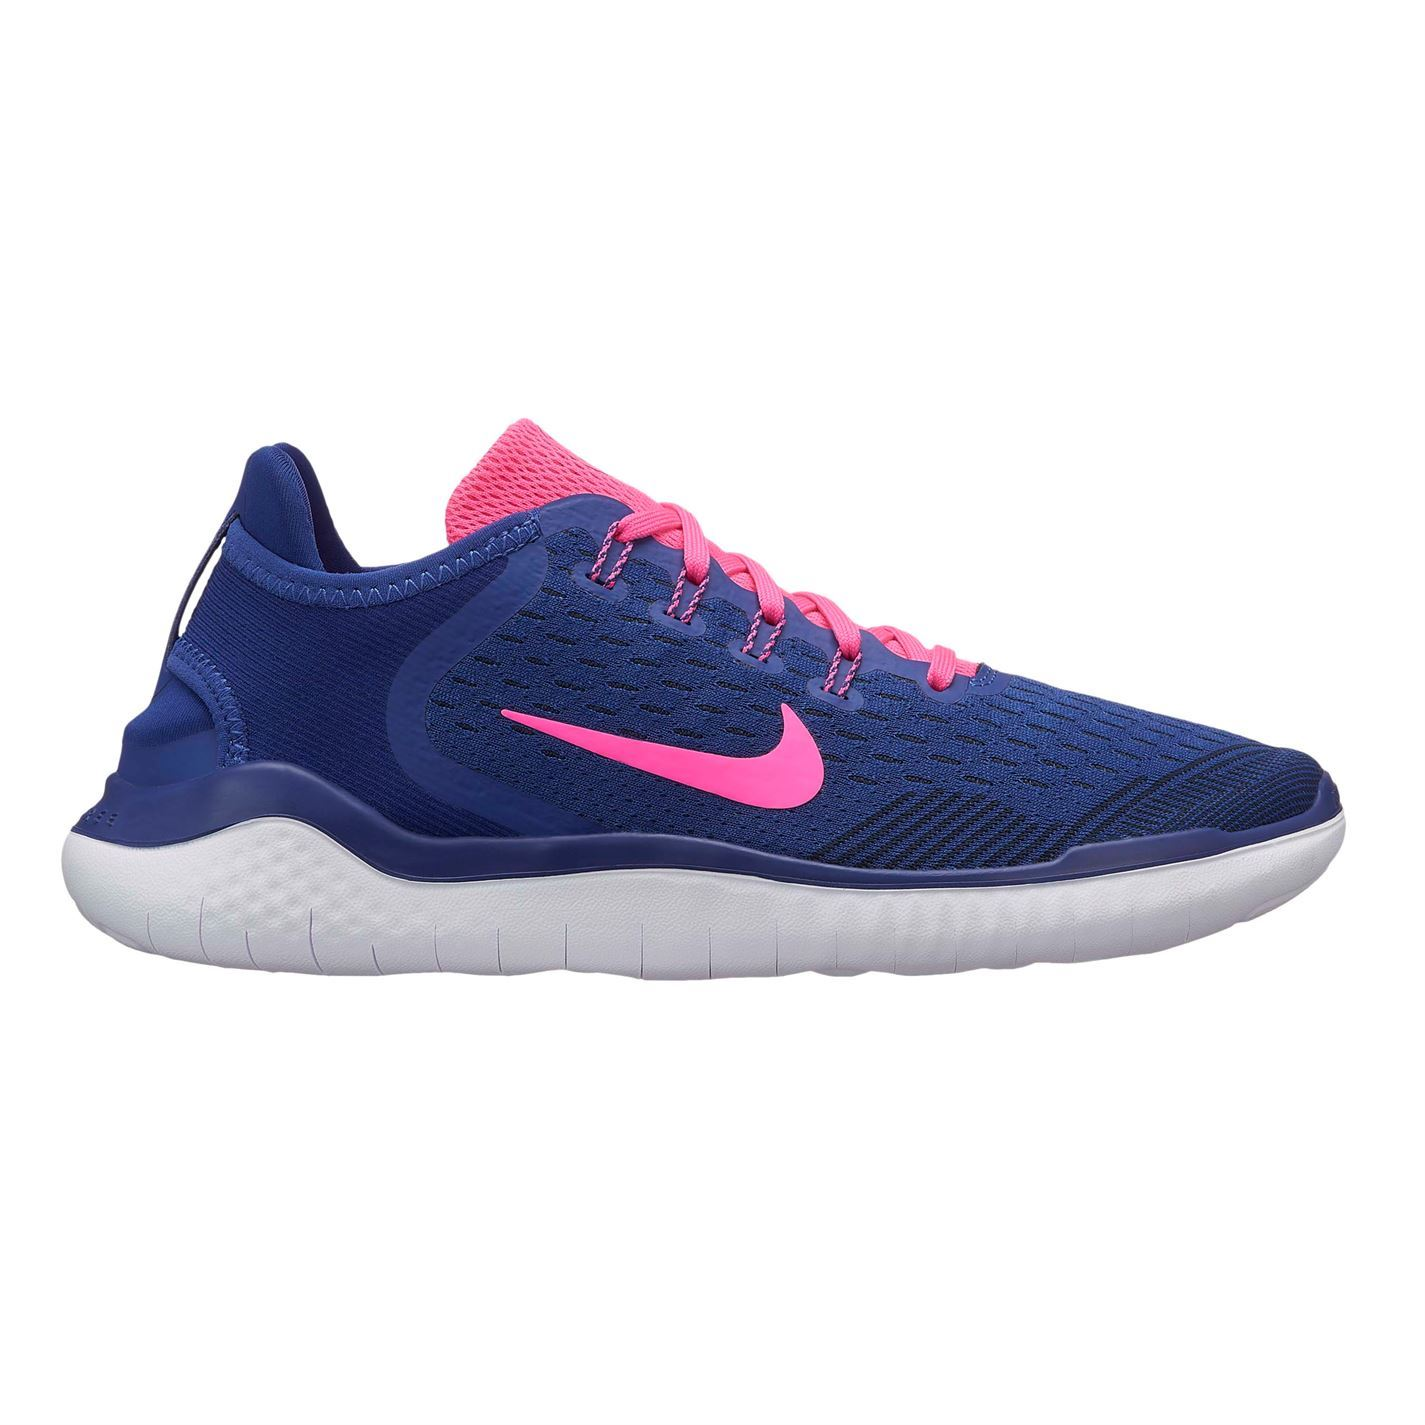 Details zu Nike Free RN 2018 Running Shoes Womens Blue Jogging Trainers Sneakers Fitness